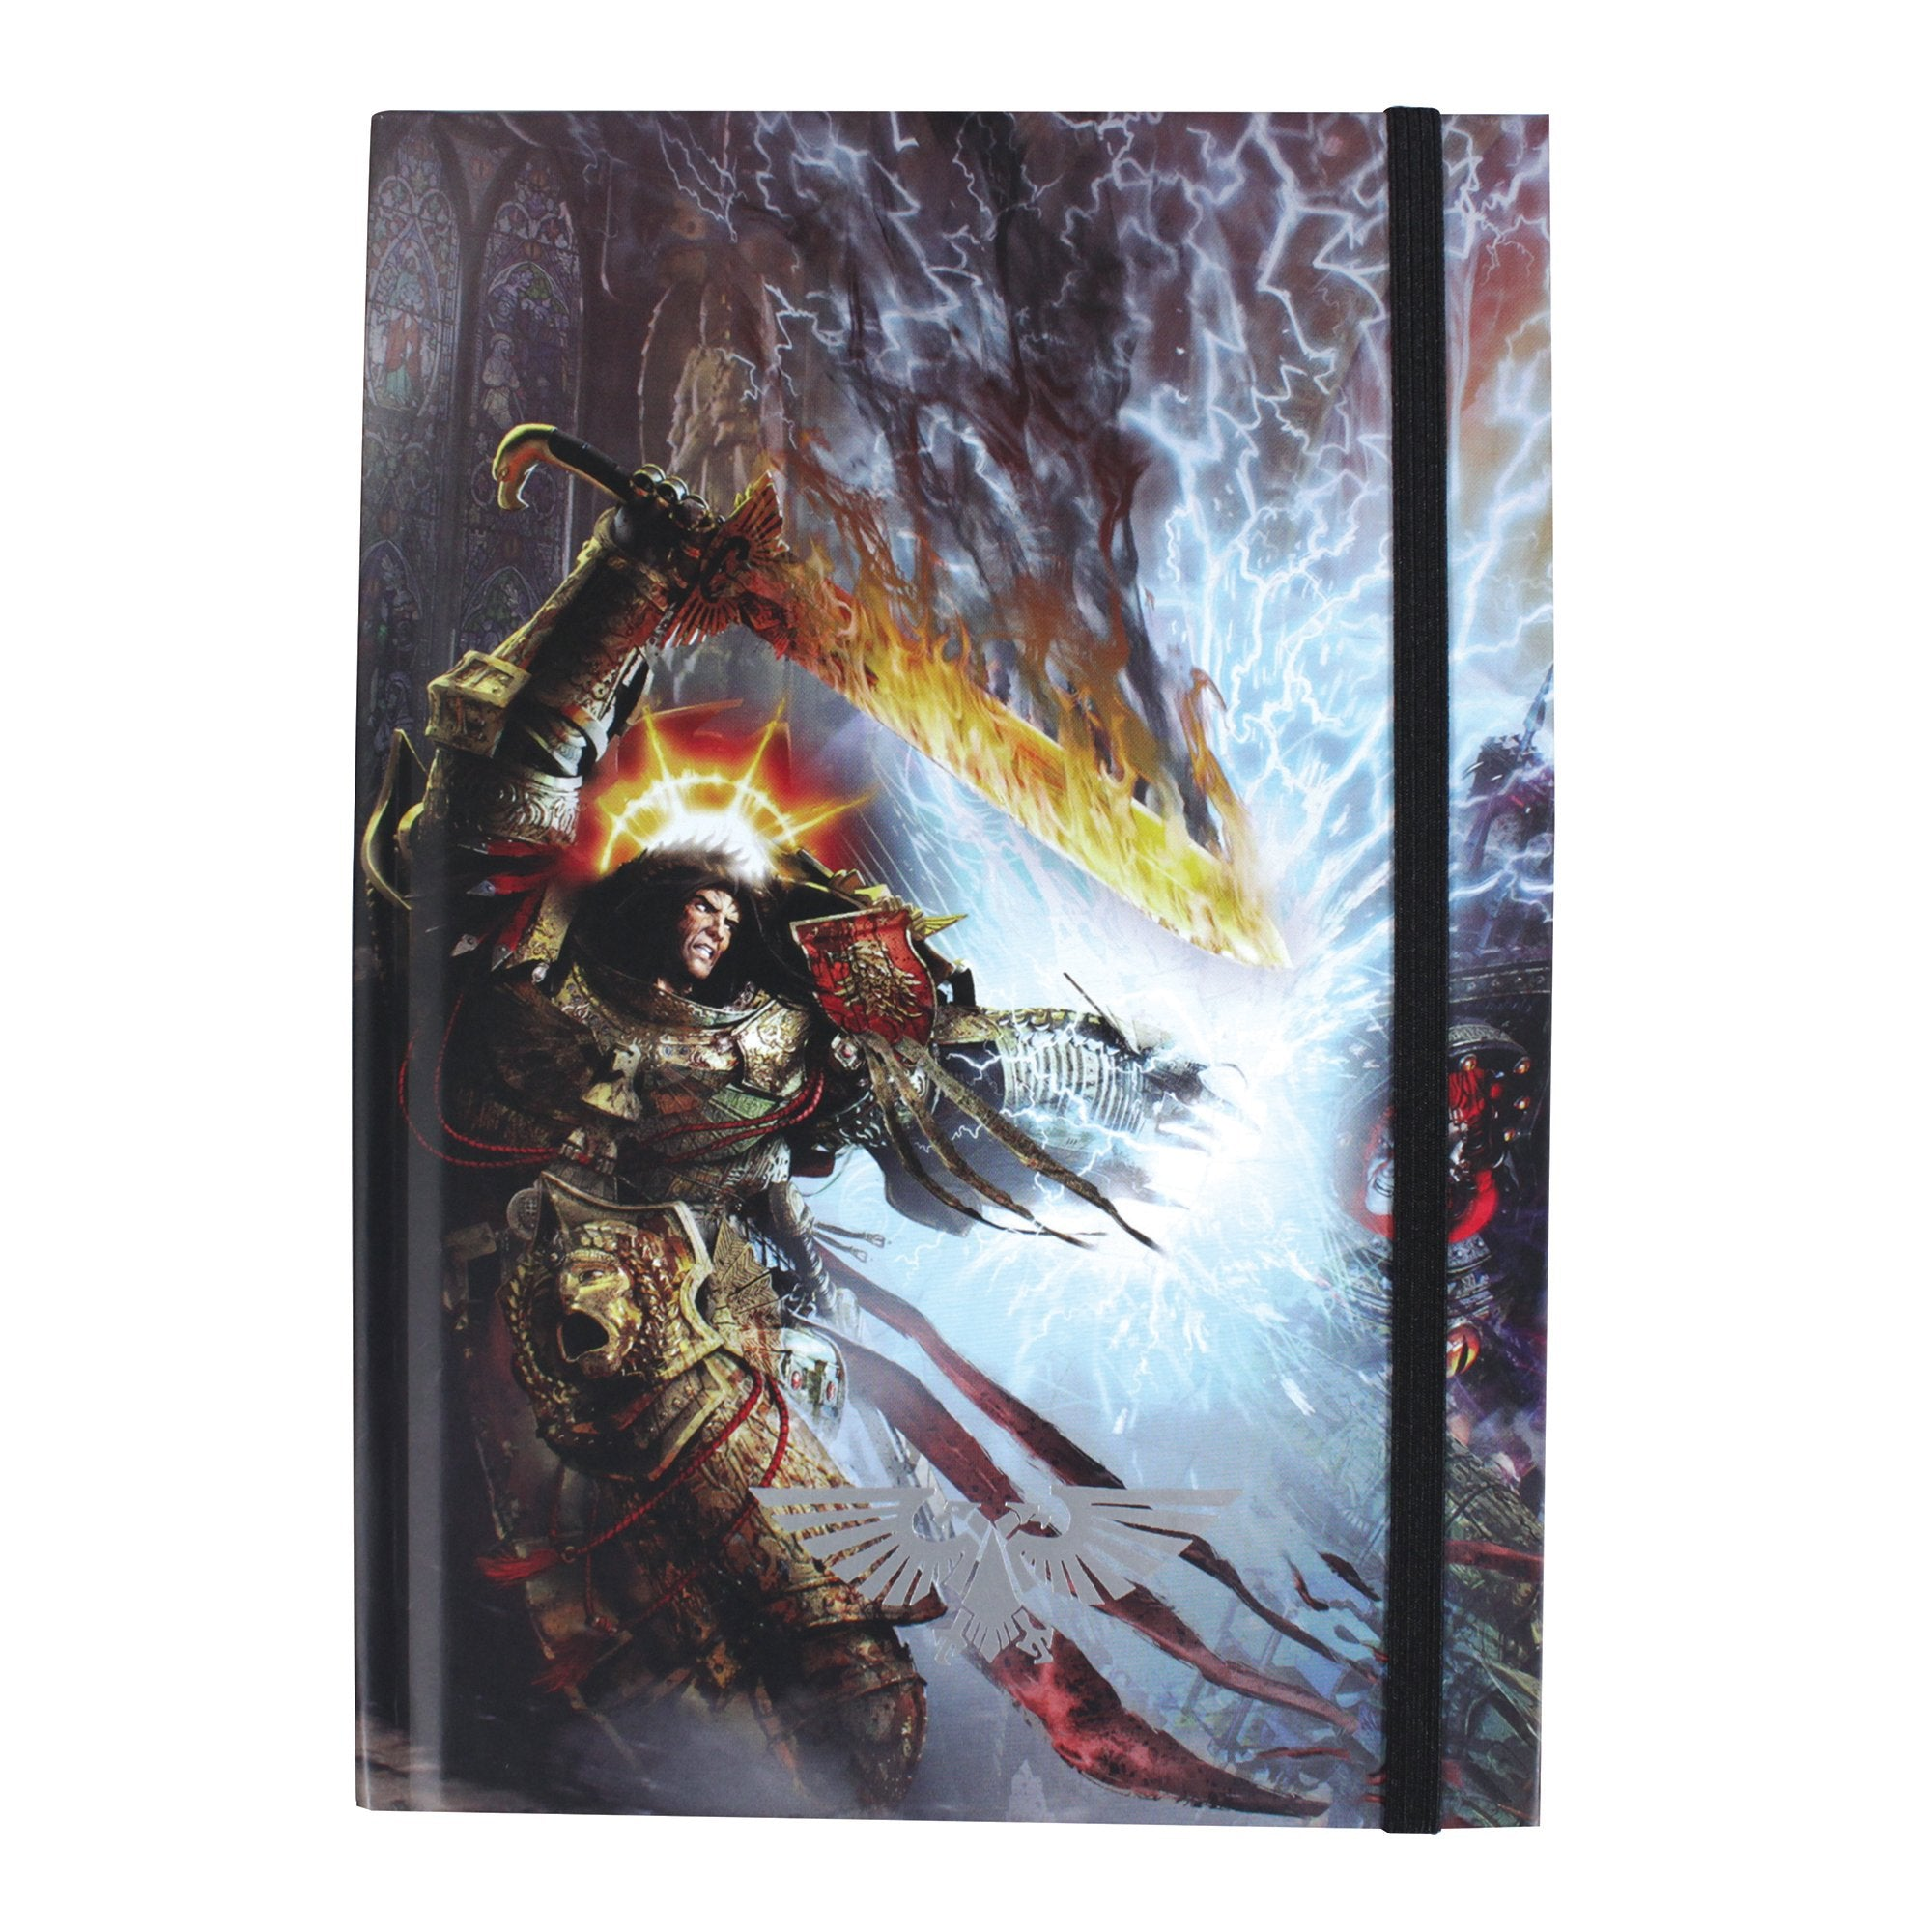 Warhammer 40,000 A5 Notebook - Emperor - Half Moon Bay US